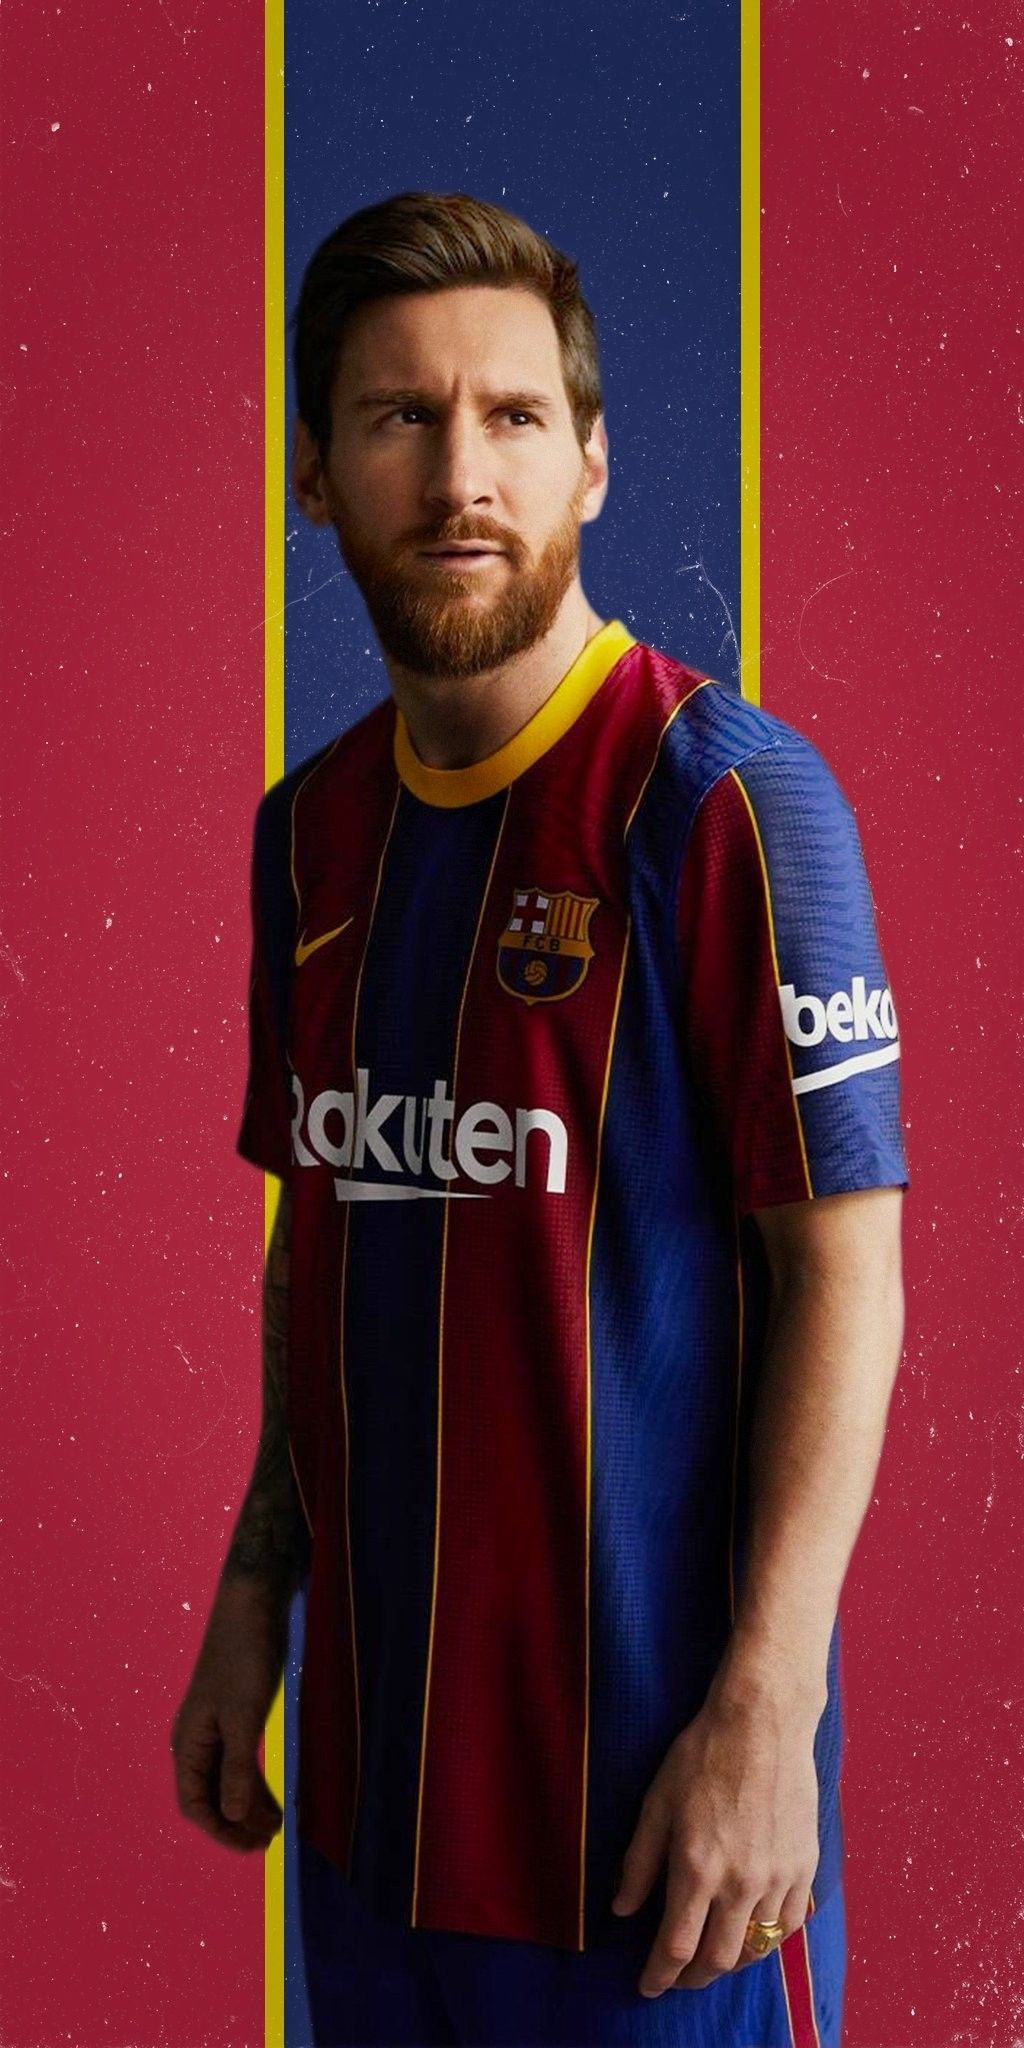 Messi 2021 Wallpapers   Top Messi 2021 Backgrounds 1024x2048